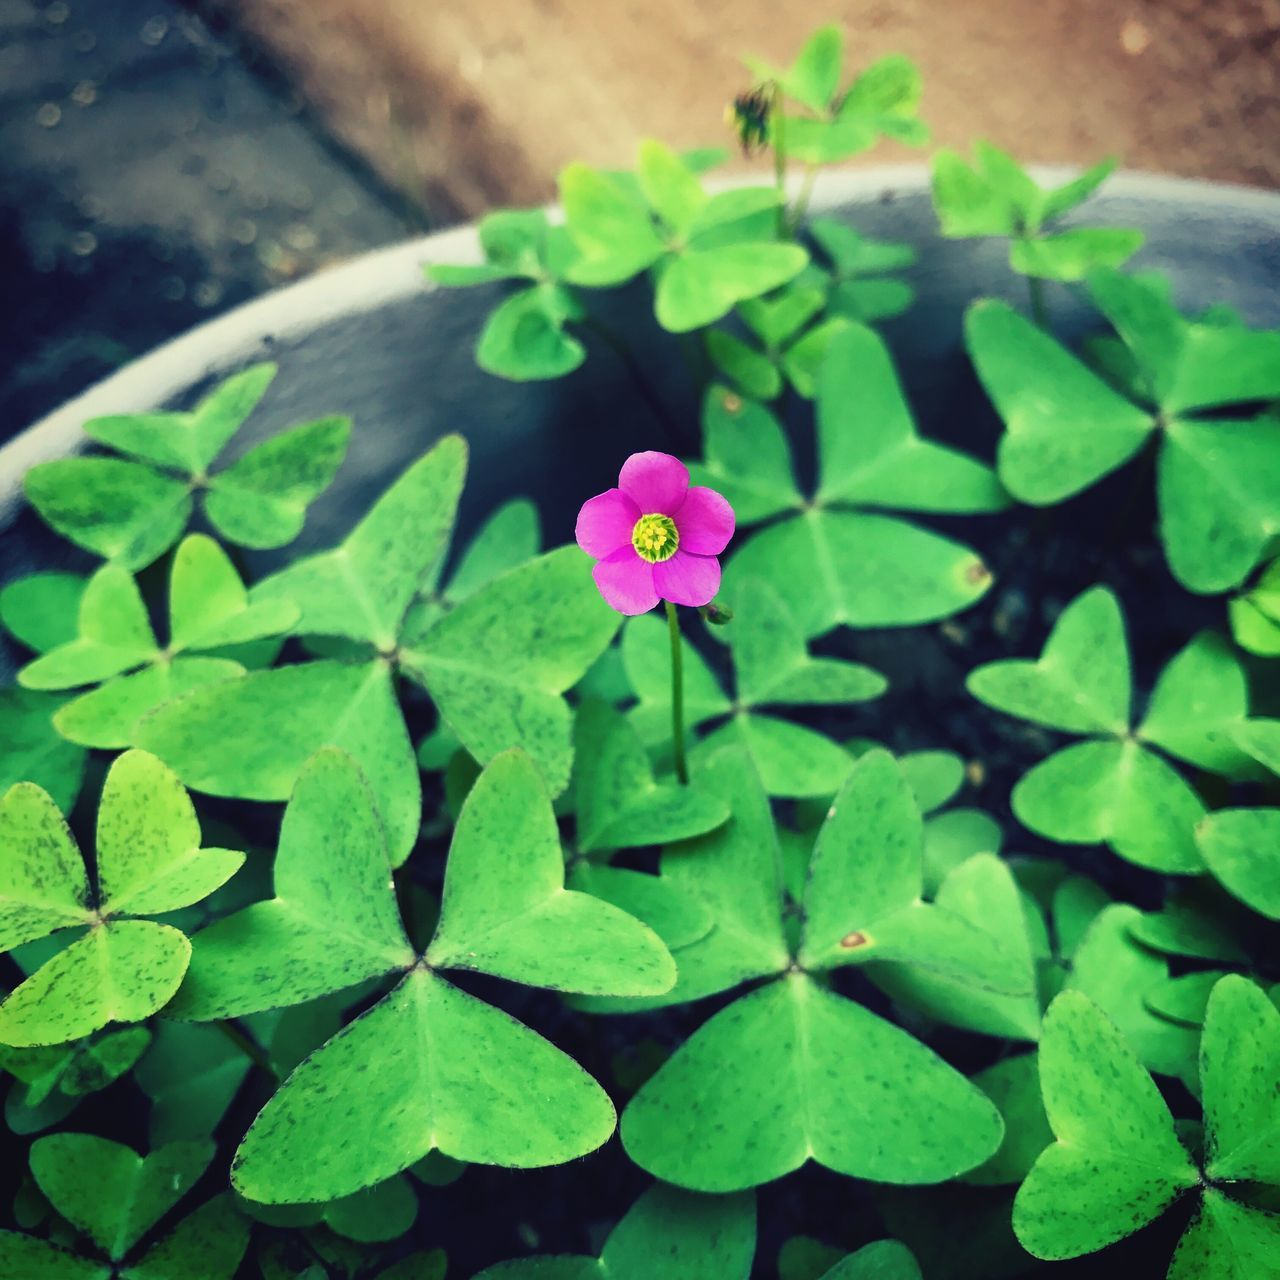 leaf, growth, plant, green color, freshness, flower, fragility, high angle view, nature, beauty in nature, petal, day, outdoors, periwinkle, no people, flower head, pink color, close-up, blooming